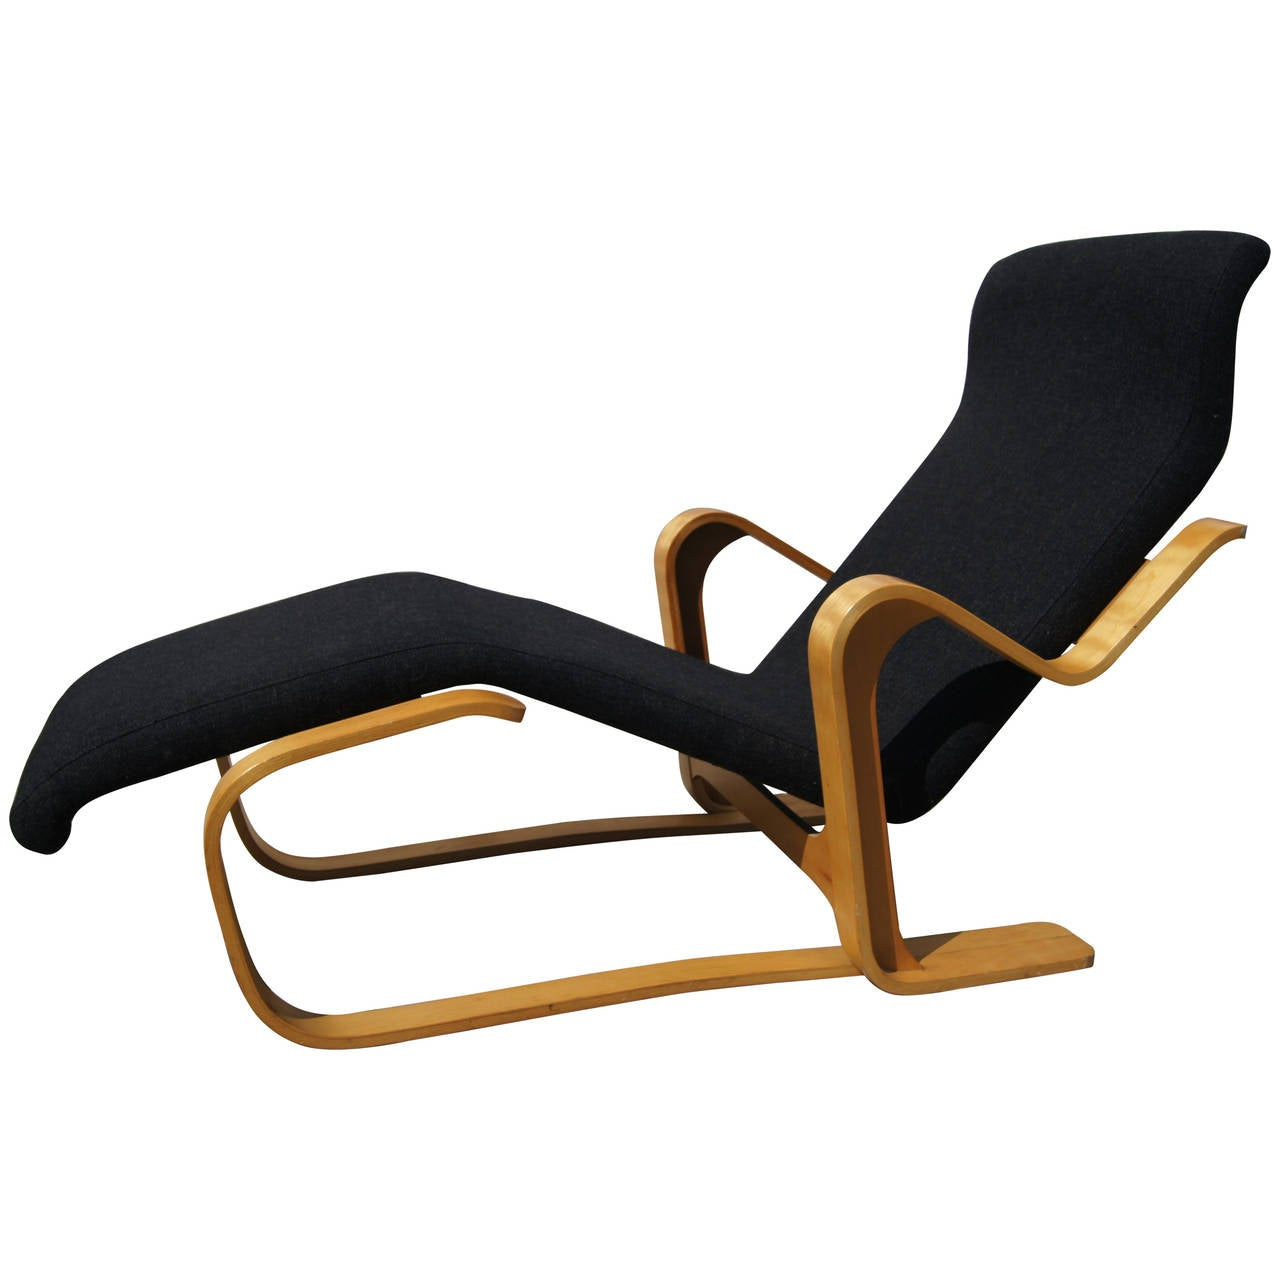 Chaise longue by marcel breuer for gavina for sale at 1stdibs for Chaise wassily